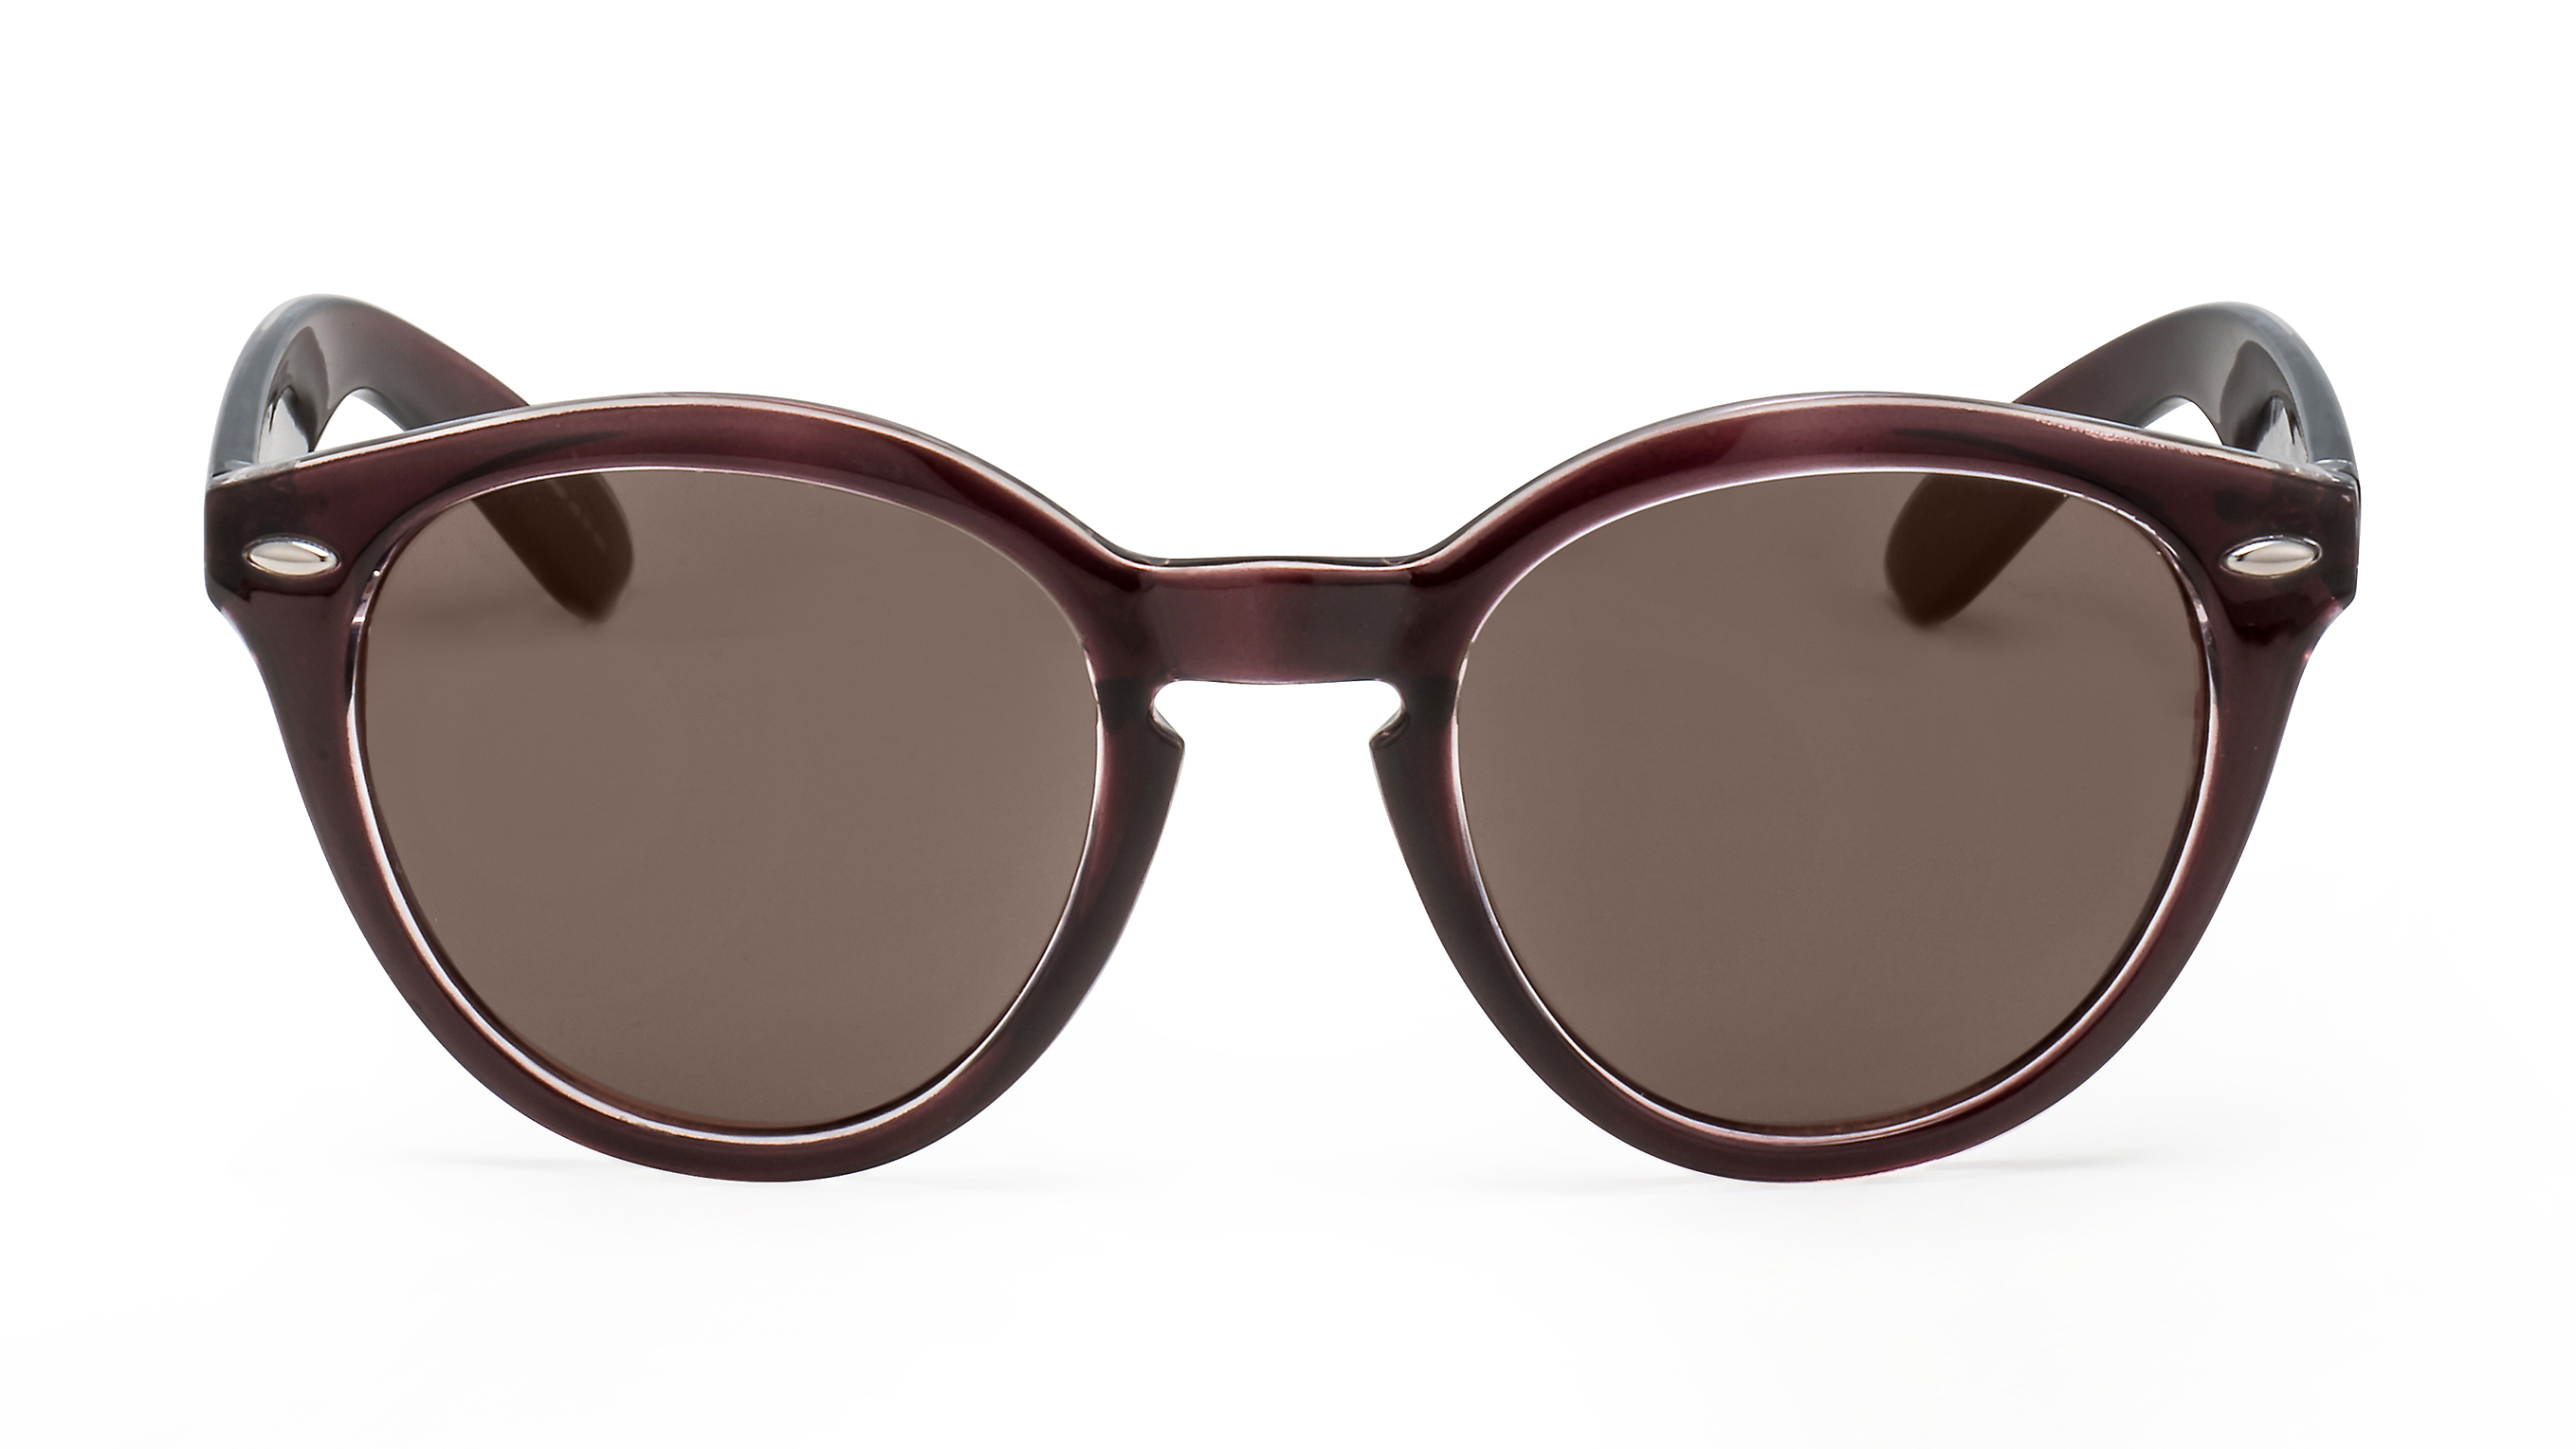 Front view sunglasses 3024408